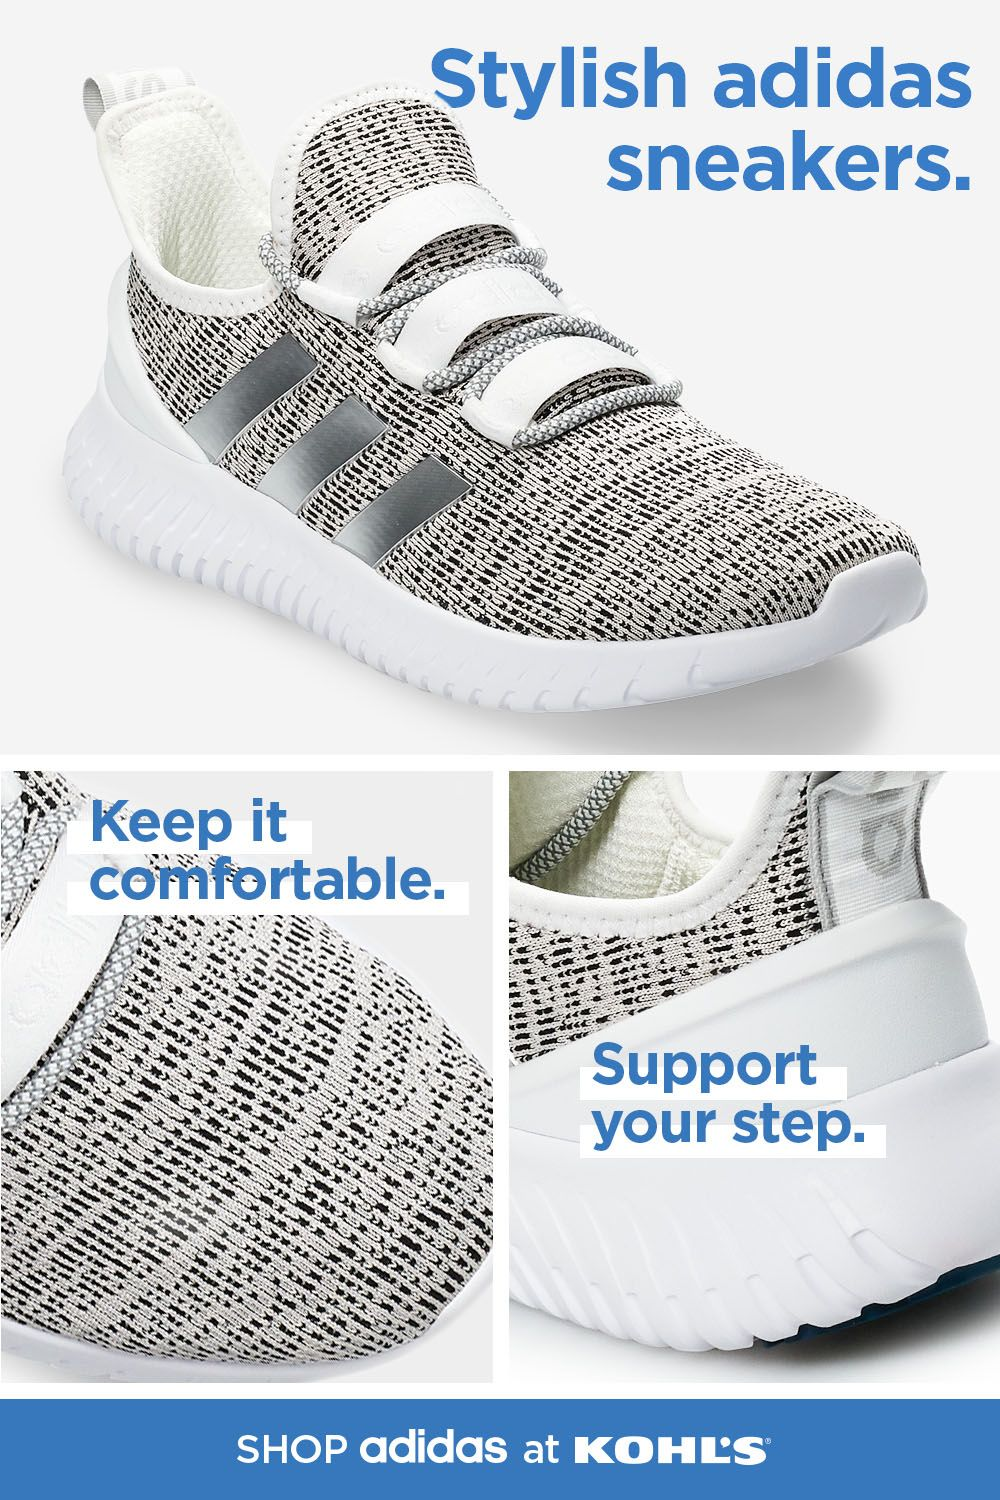 Shop adidas sneakers at Kohl's. in 2020